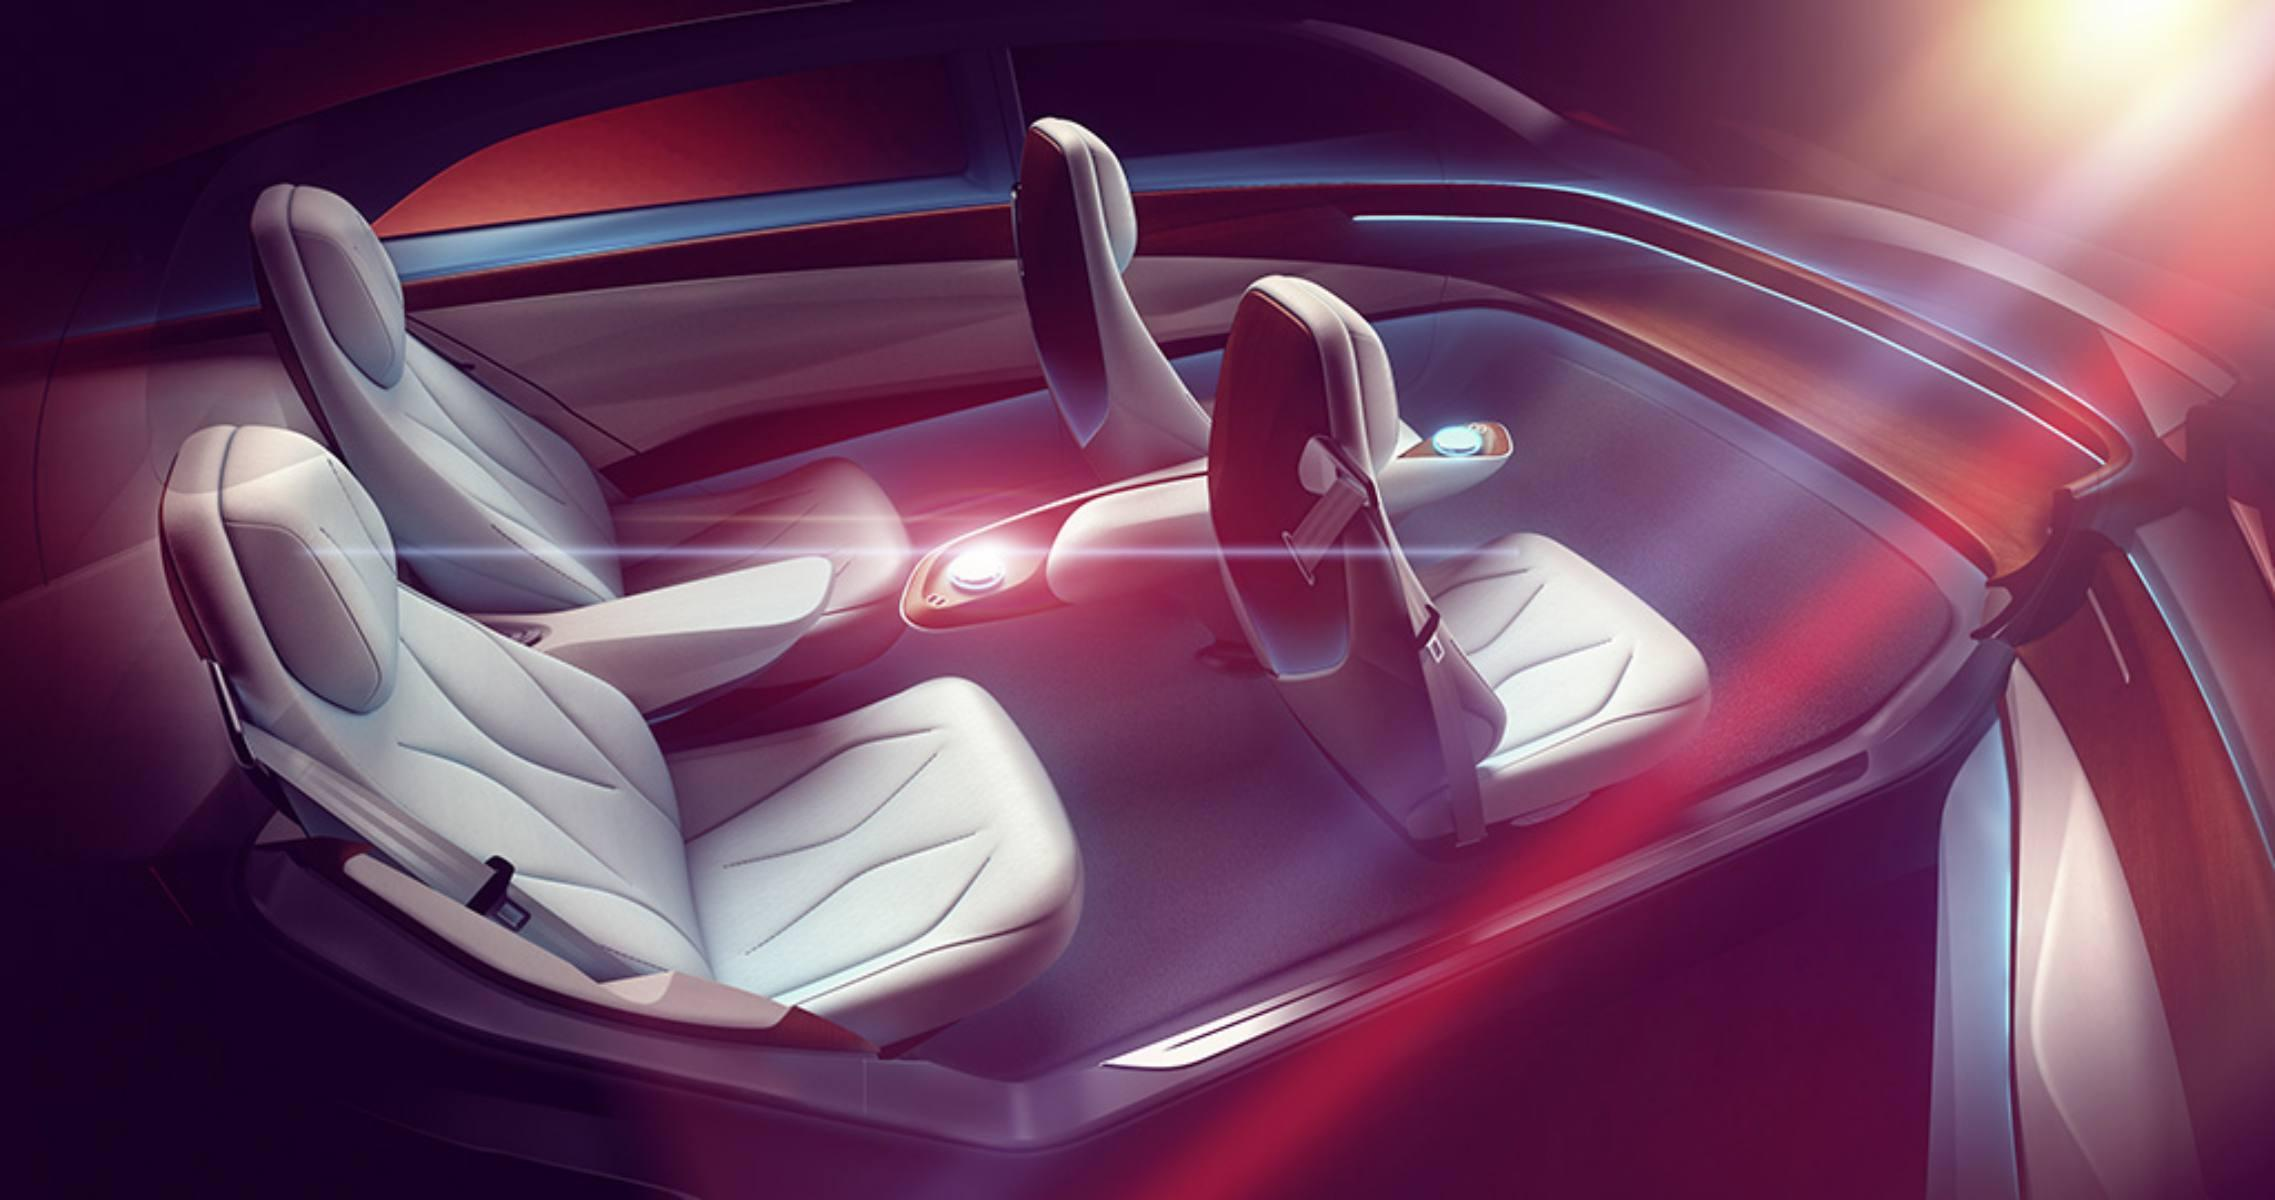 Volkswagen's new concept car features a 'digital chauffeur' instead of a steering wheel